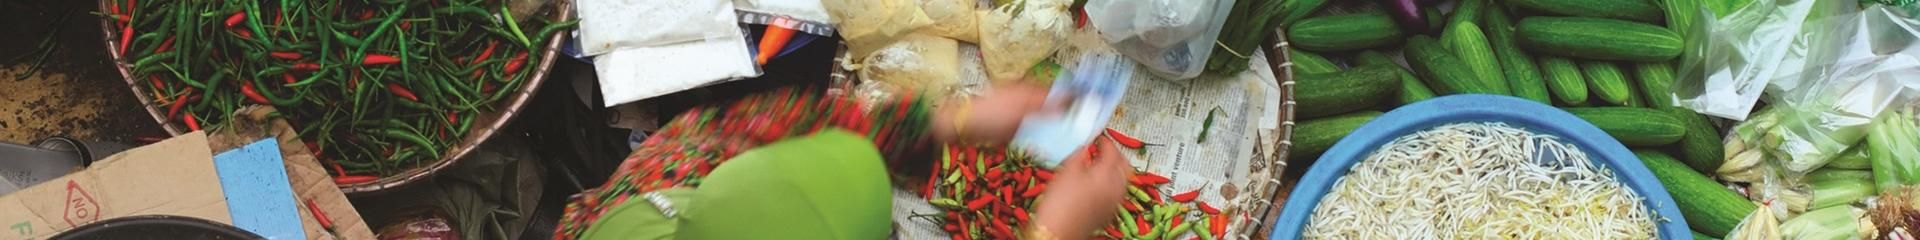 Top view of a person sorting through various vegetables including chilis